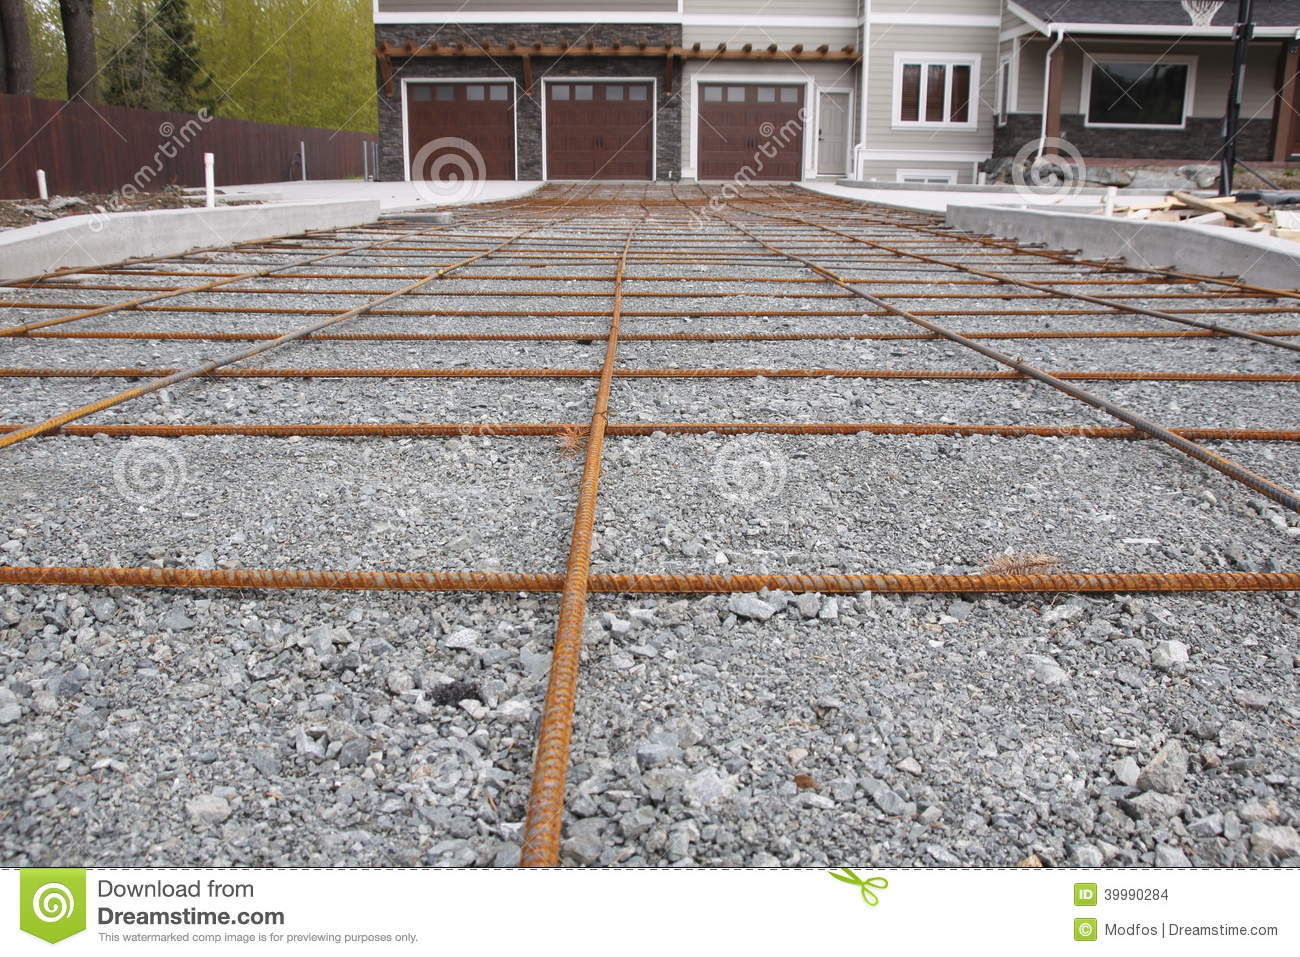 Rebar for new driveway stock photo image 39990284 for Pouring concrete driveway